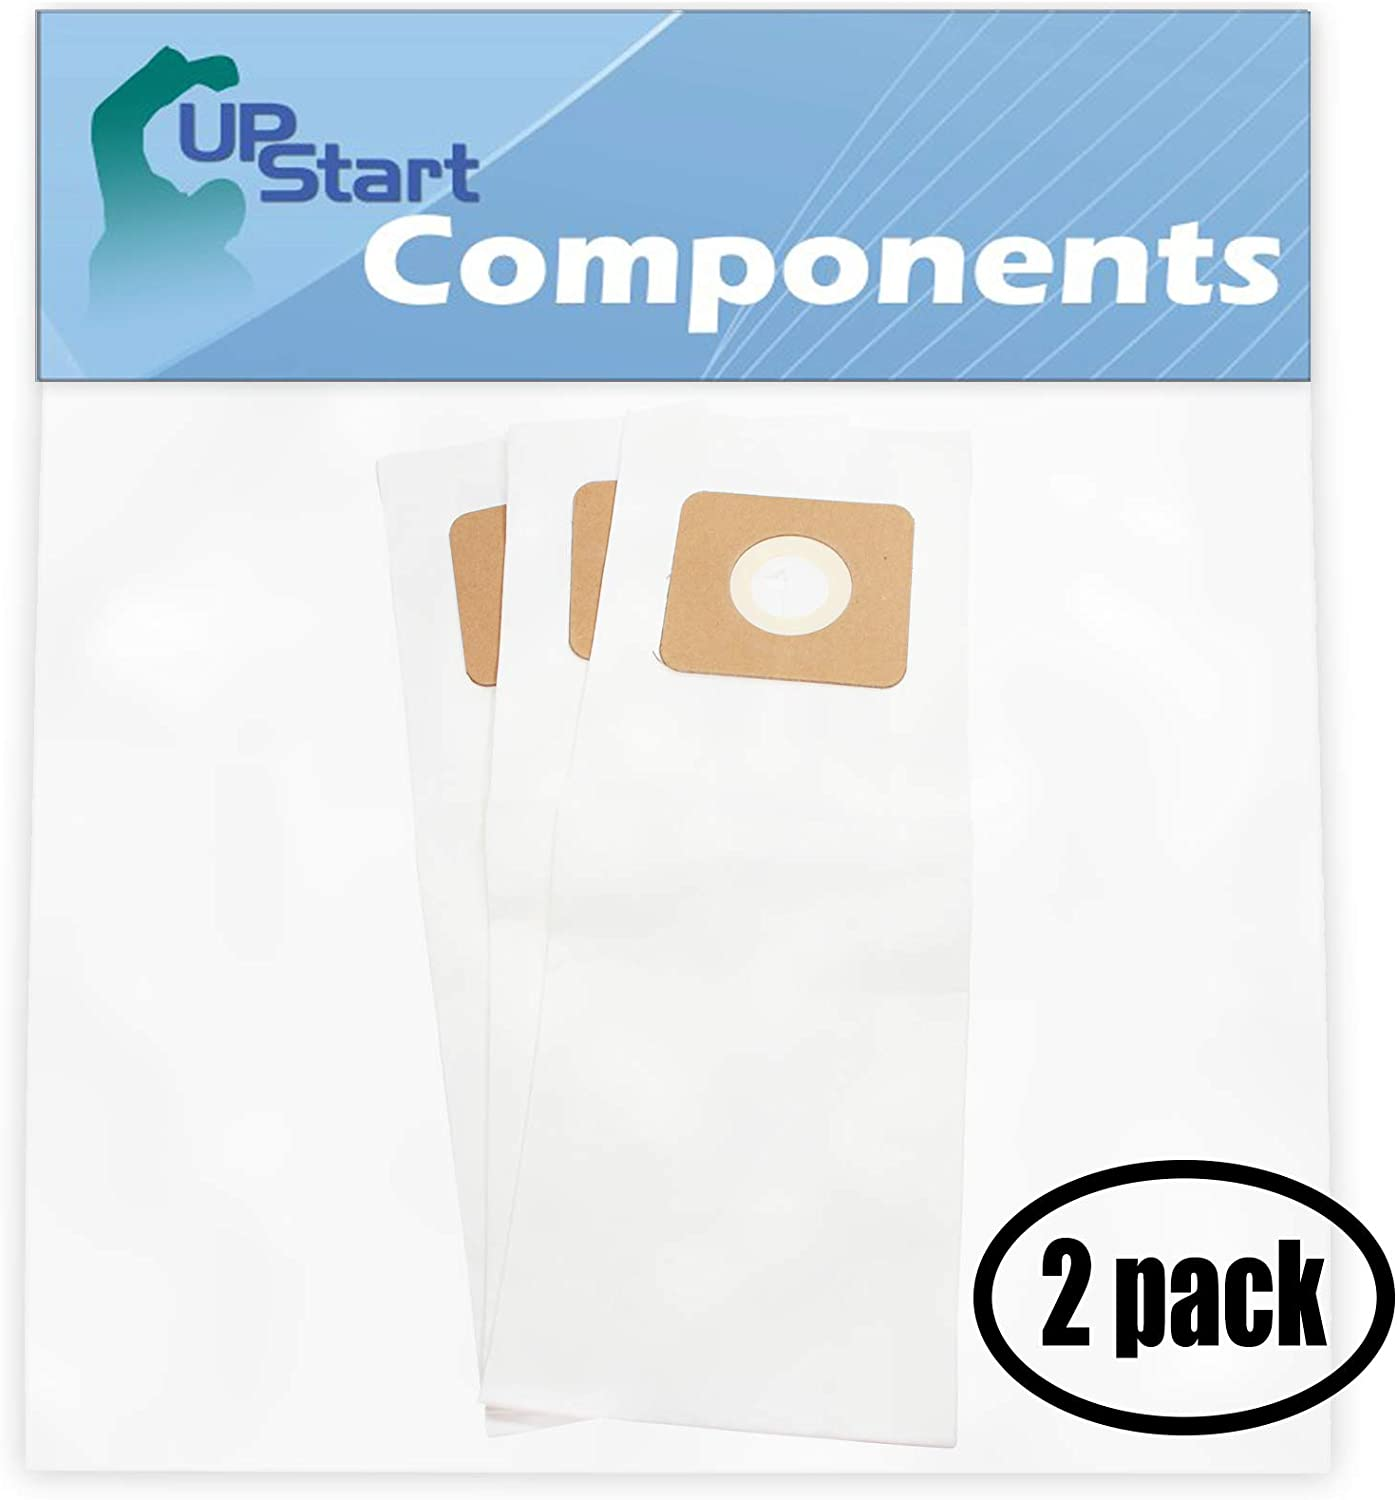 Upstart Battery 6 Replacement for Panasonic MCV5247 Vacuum Bags with 7-Piece Micro Vacuum Attachment Kit - Compatible with Panasonic Type U, U-3, U-6 Vacuum Bags (2-Pack, 3 Bags per Pack)